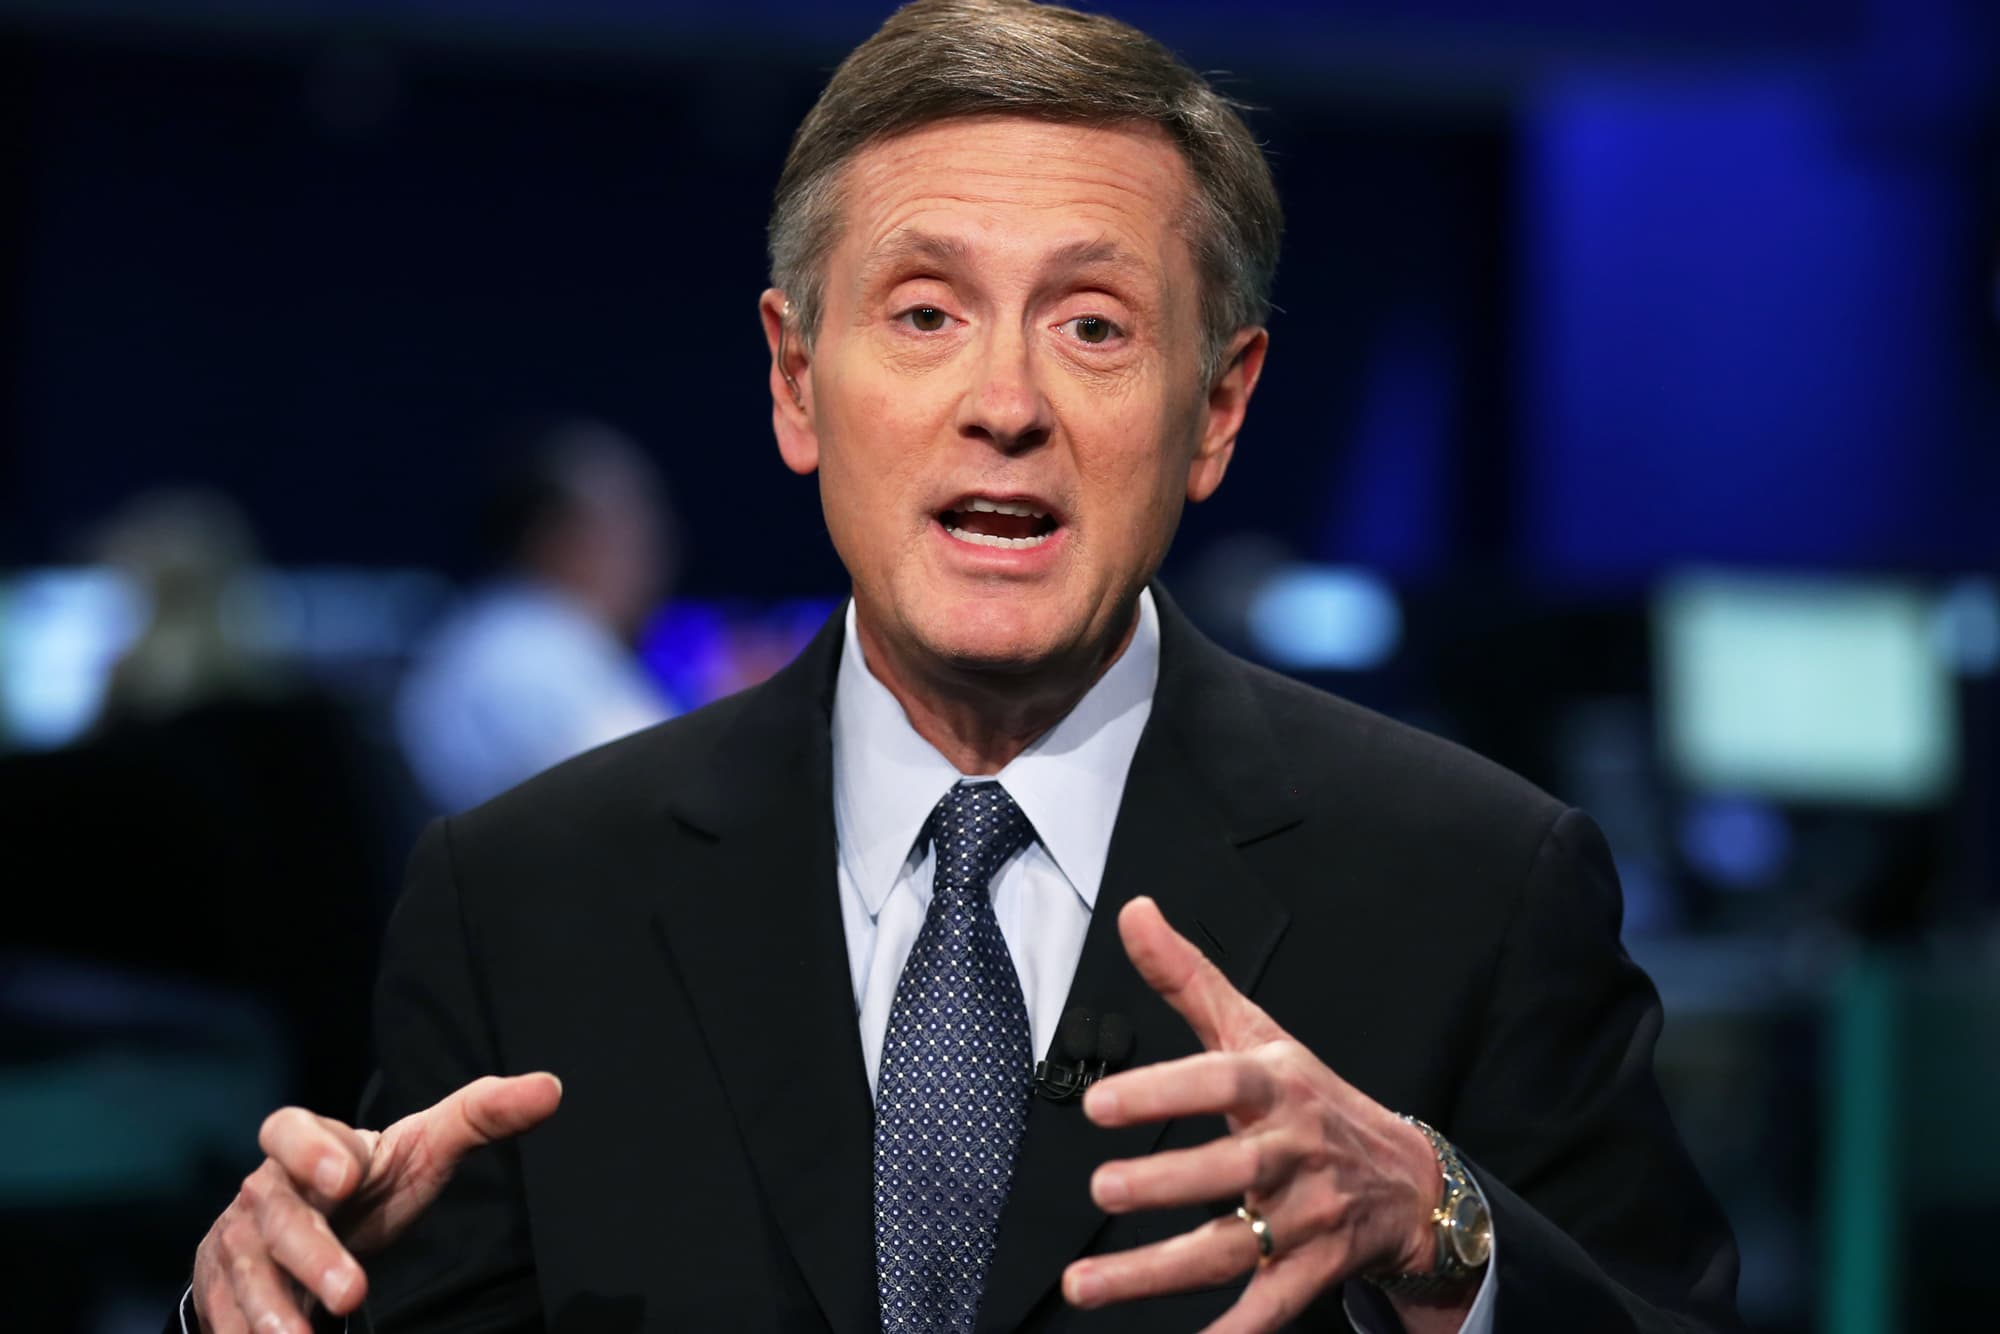 Fed Vice Chair Clarida says the global economic outlook has worsened since July meeting